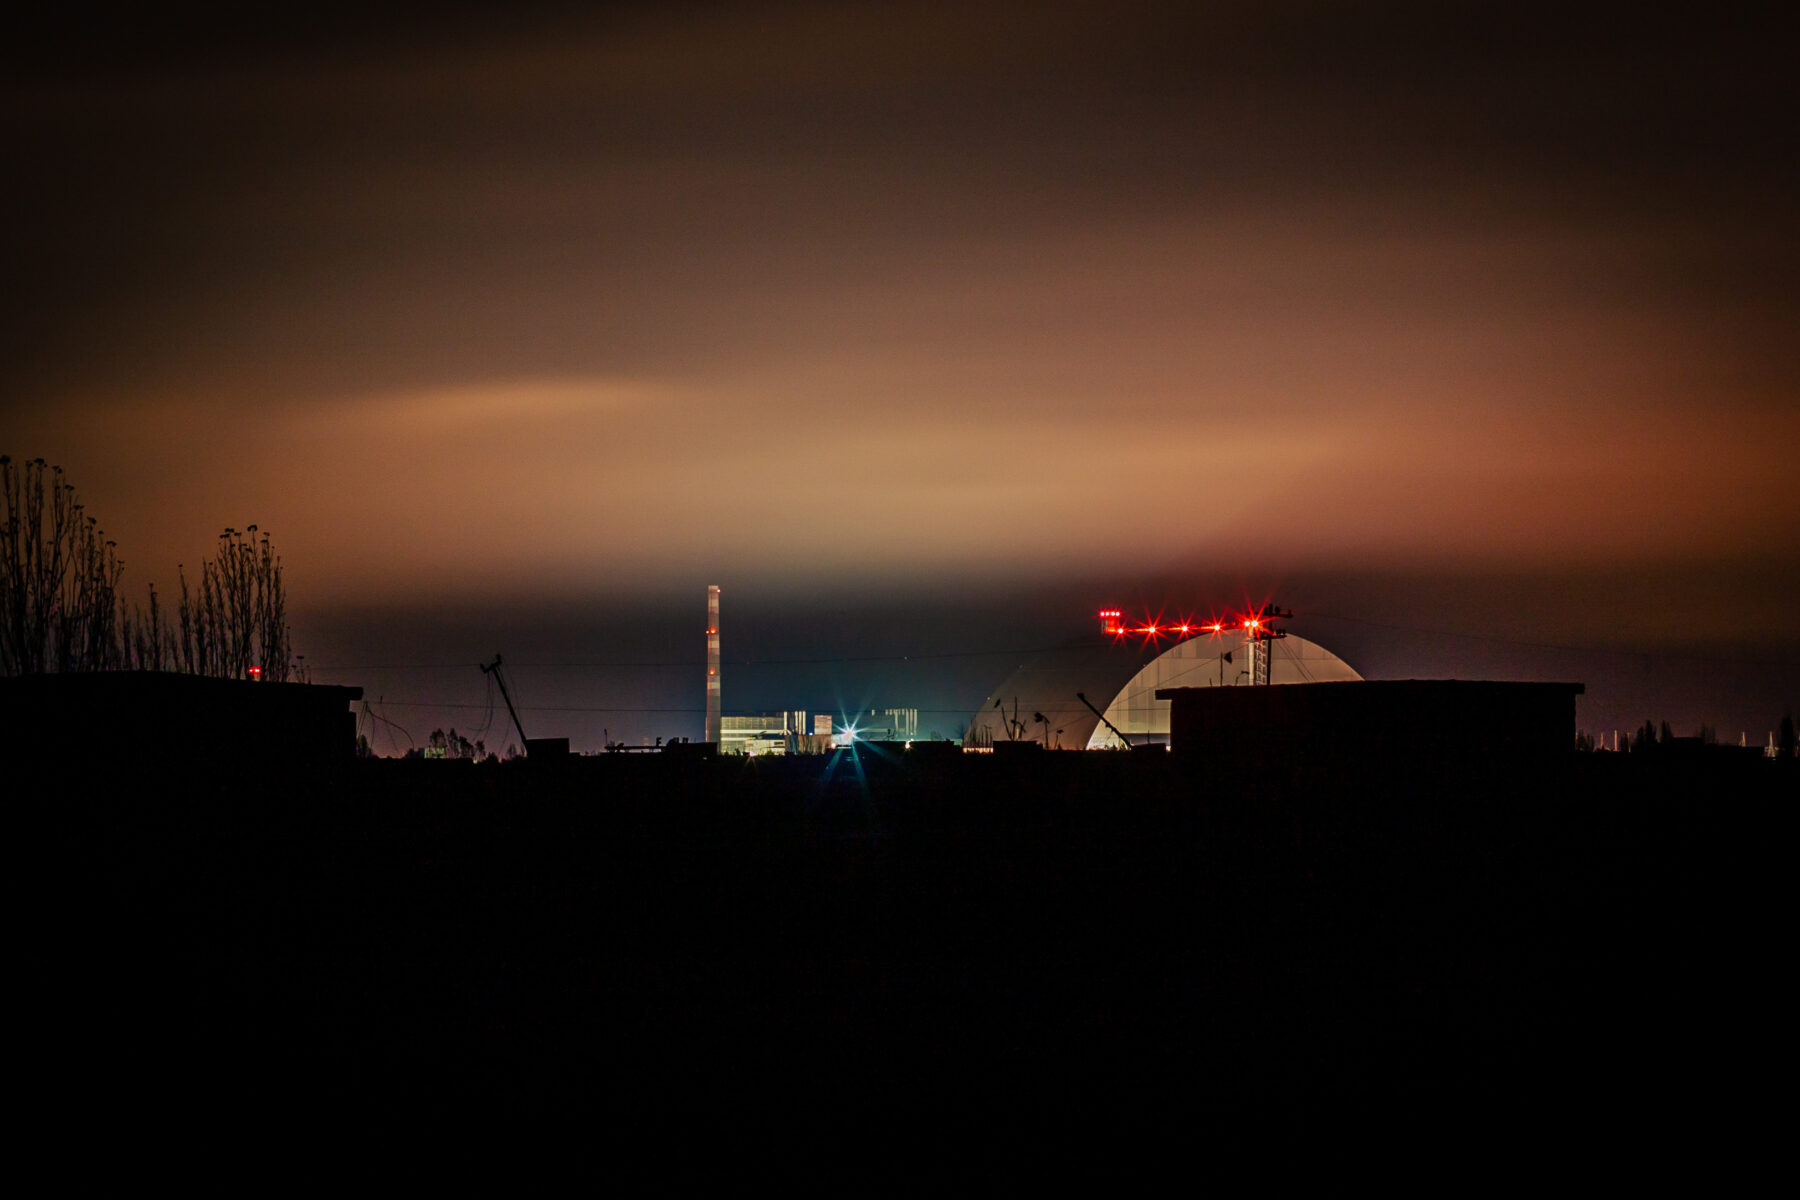 """The """"New Safe Confinement"""" viewed from the distance."""